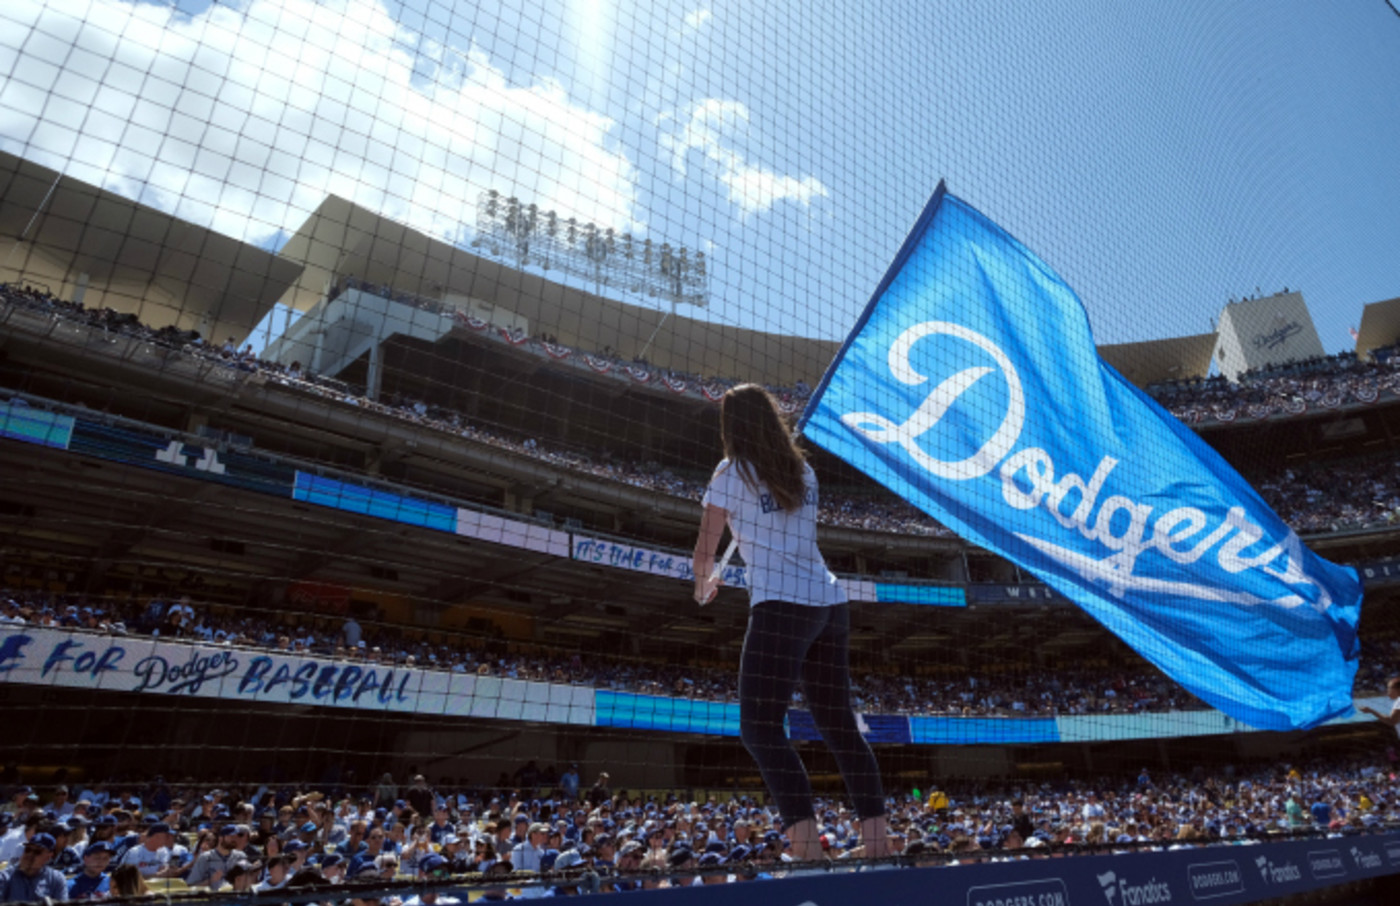 Fans fill the the seats during opening day at Dodger Stadium